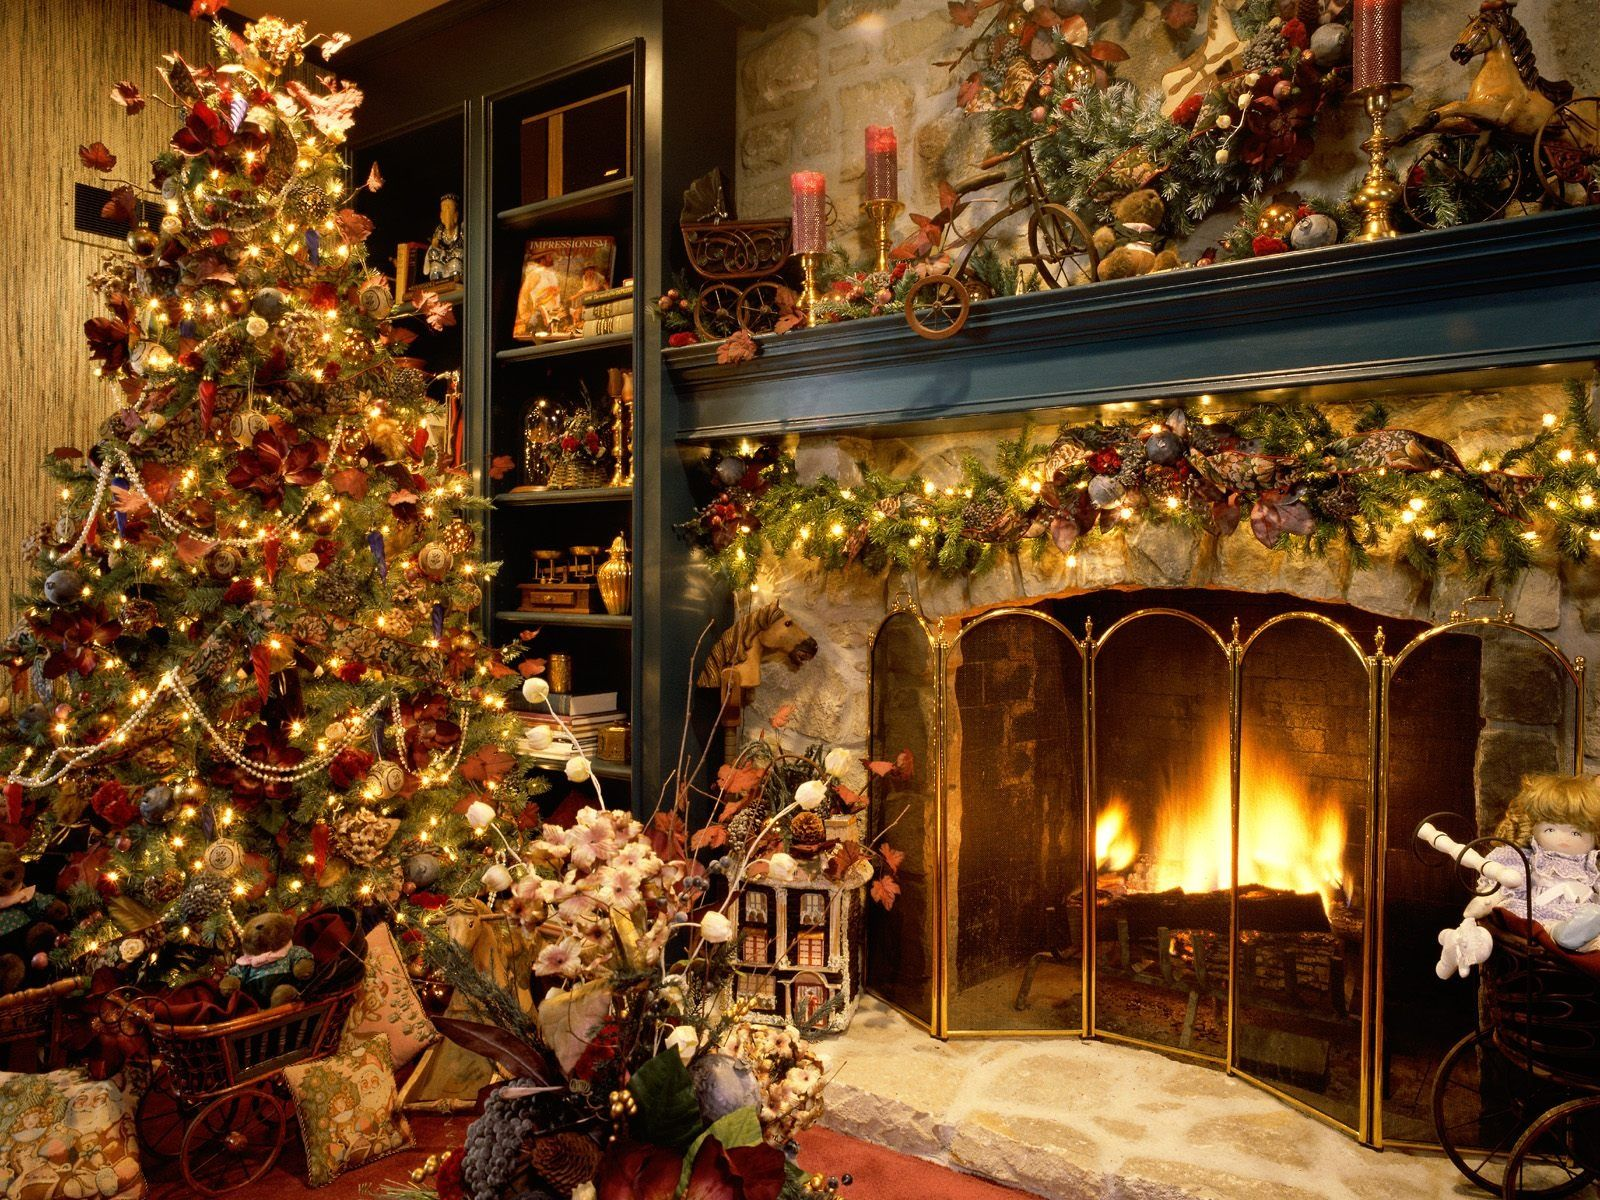 Google Image Result For Http New Travelwallpaperstock Com Wp Content Uploads 2012 Christmas Tree And Fireplace Christmas Fireplace Beautiful Christmas Trees